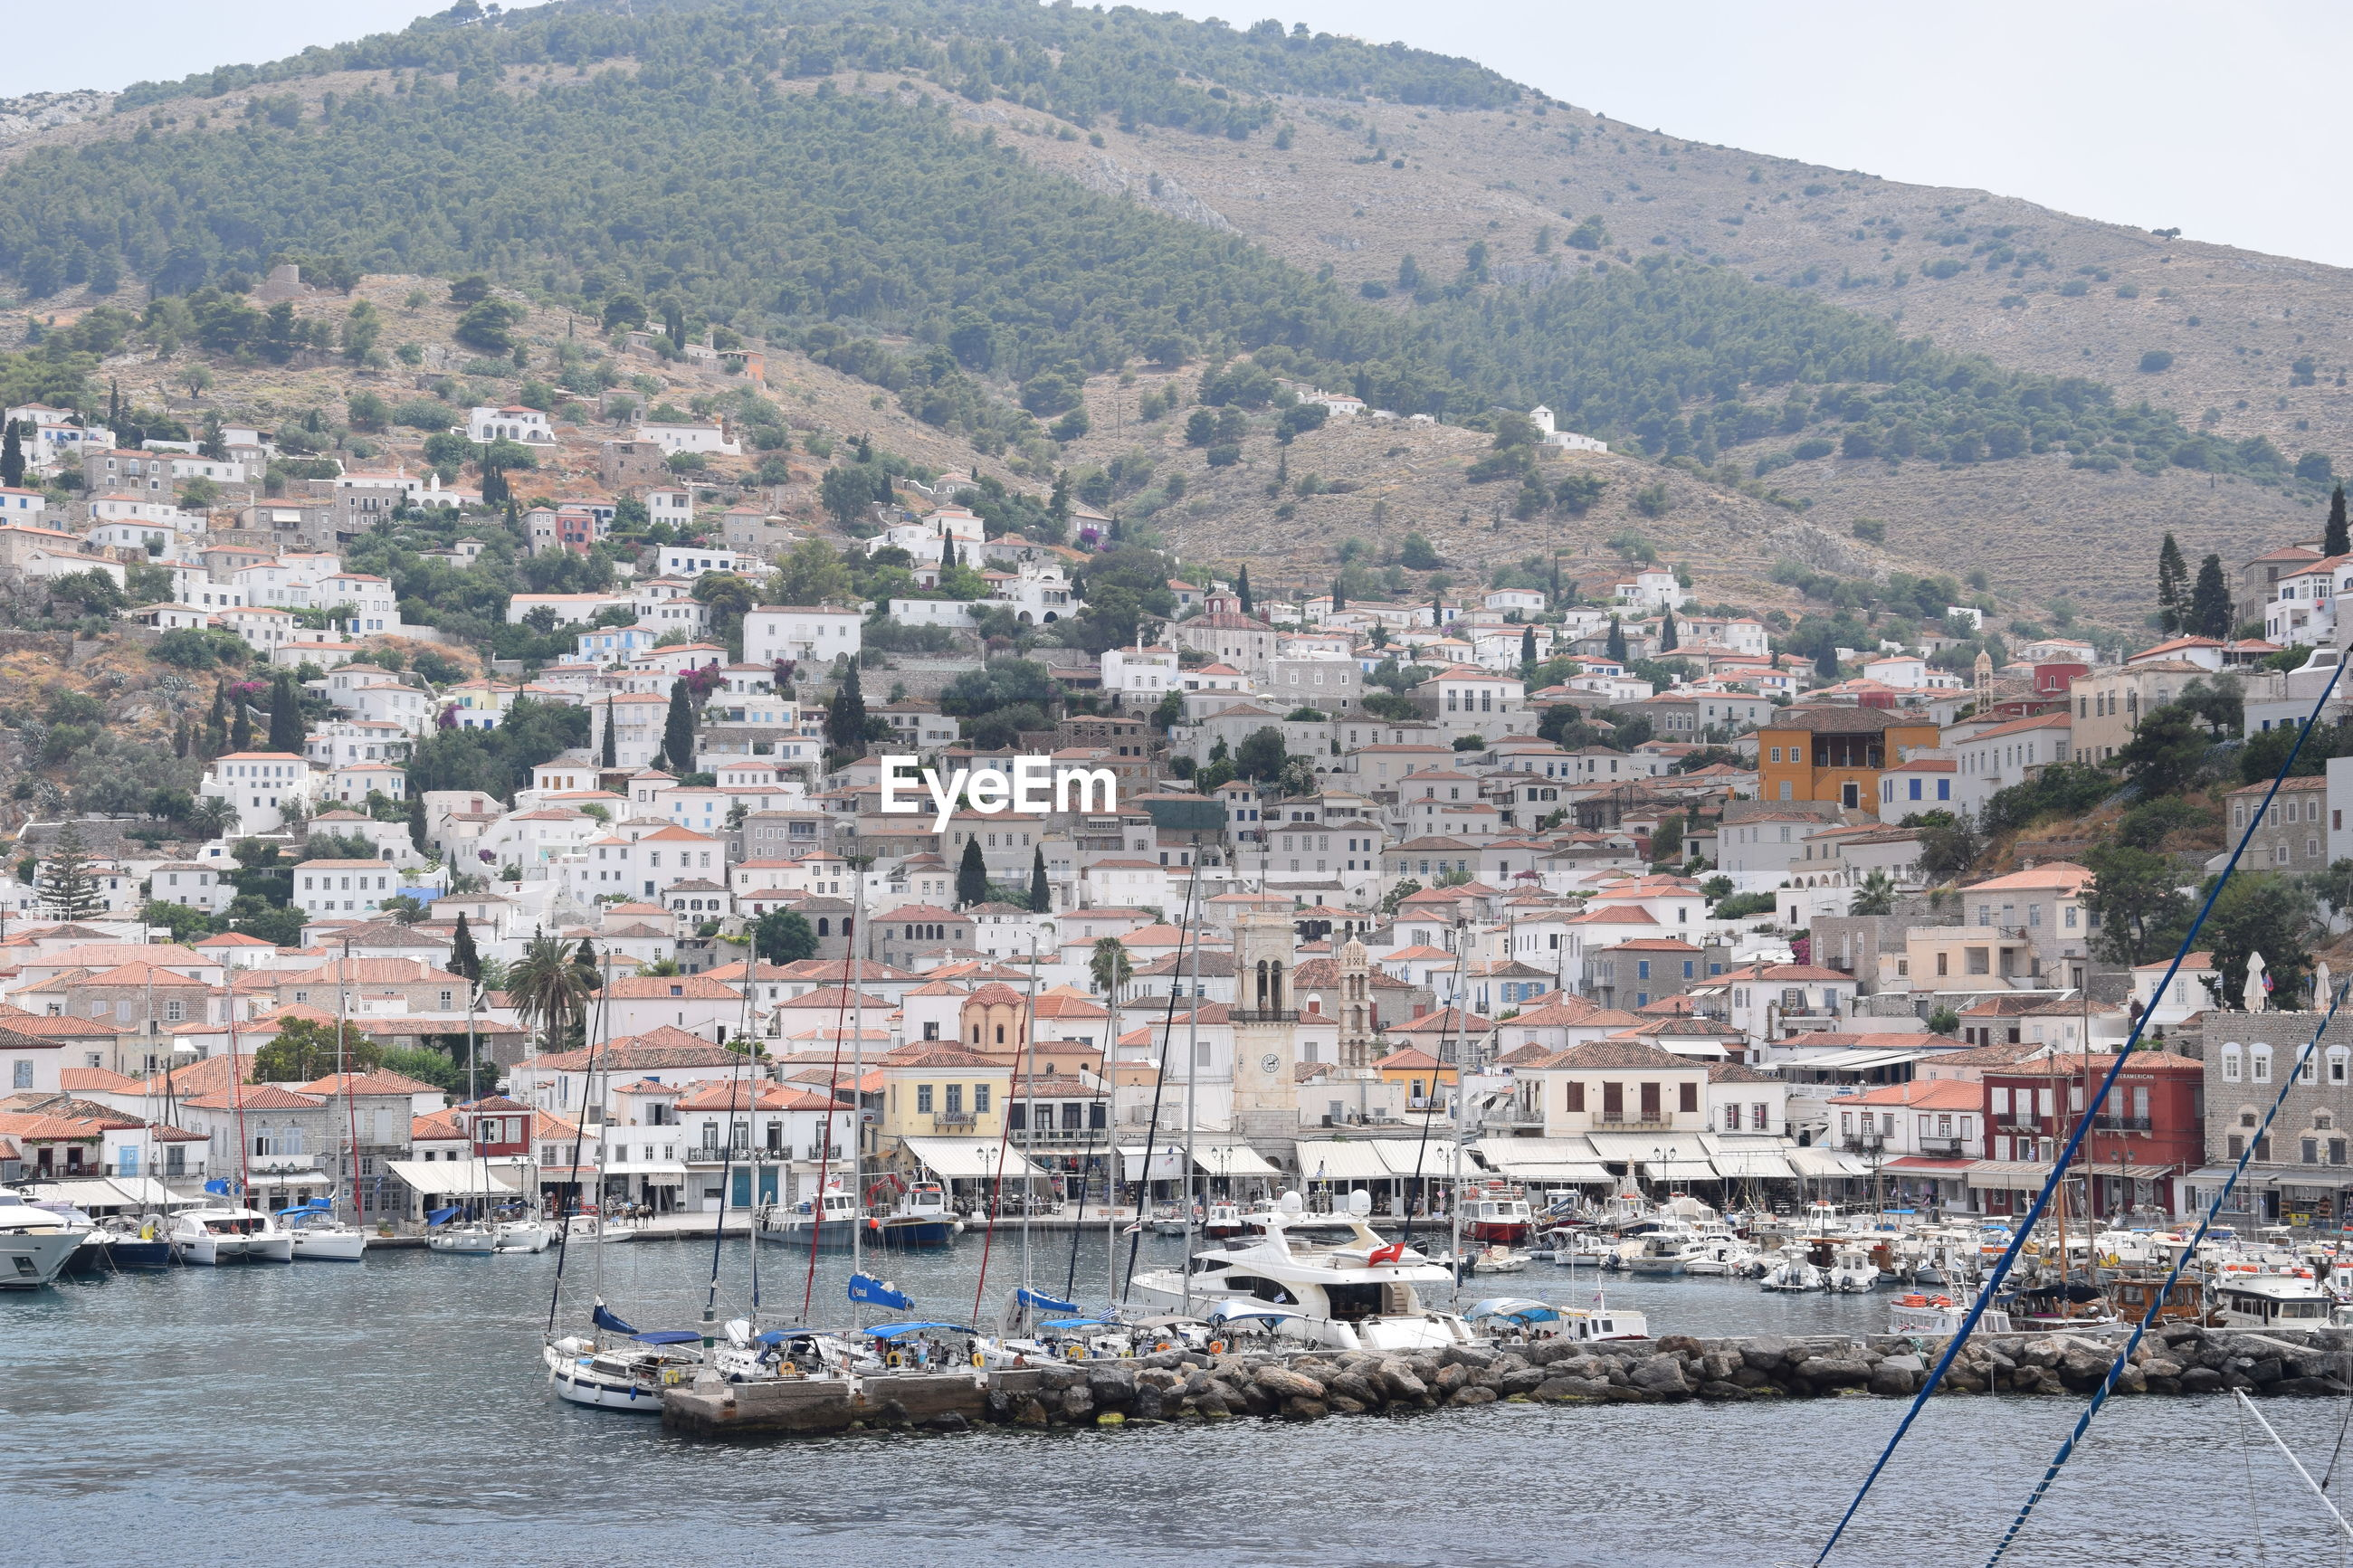 HIGH ANGLE VIEW OF TOWNSCAPE BY SEA AGAINST MOUNTAIN